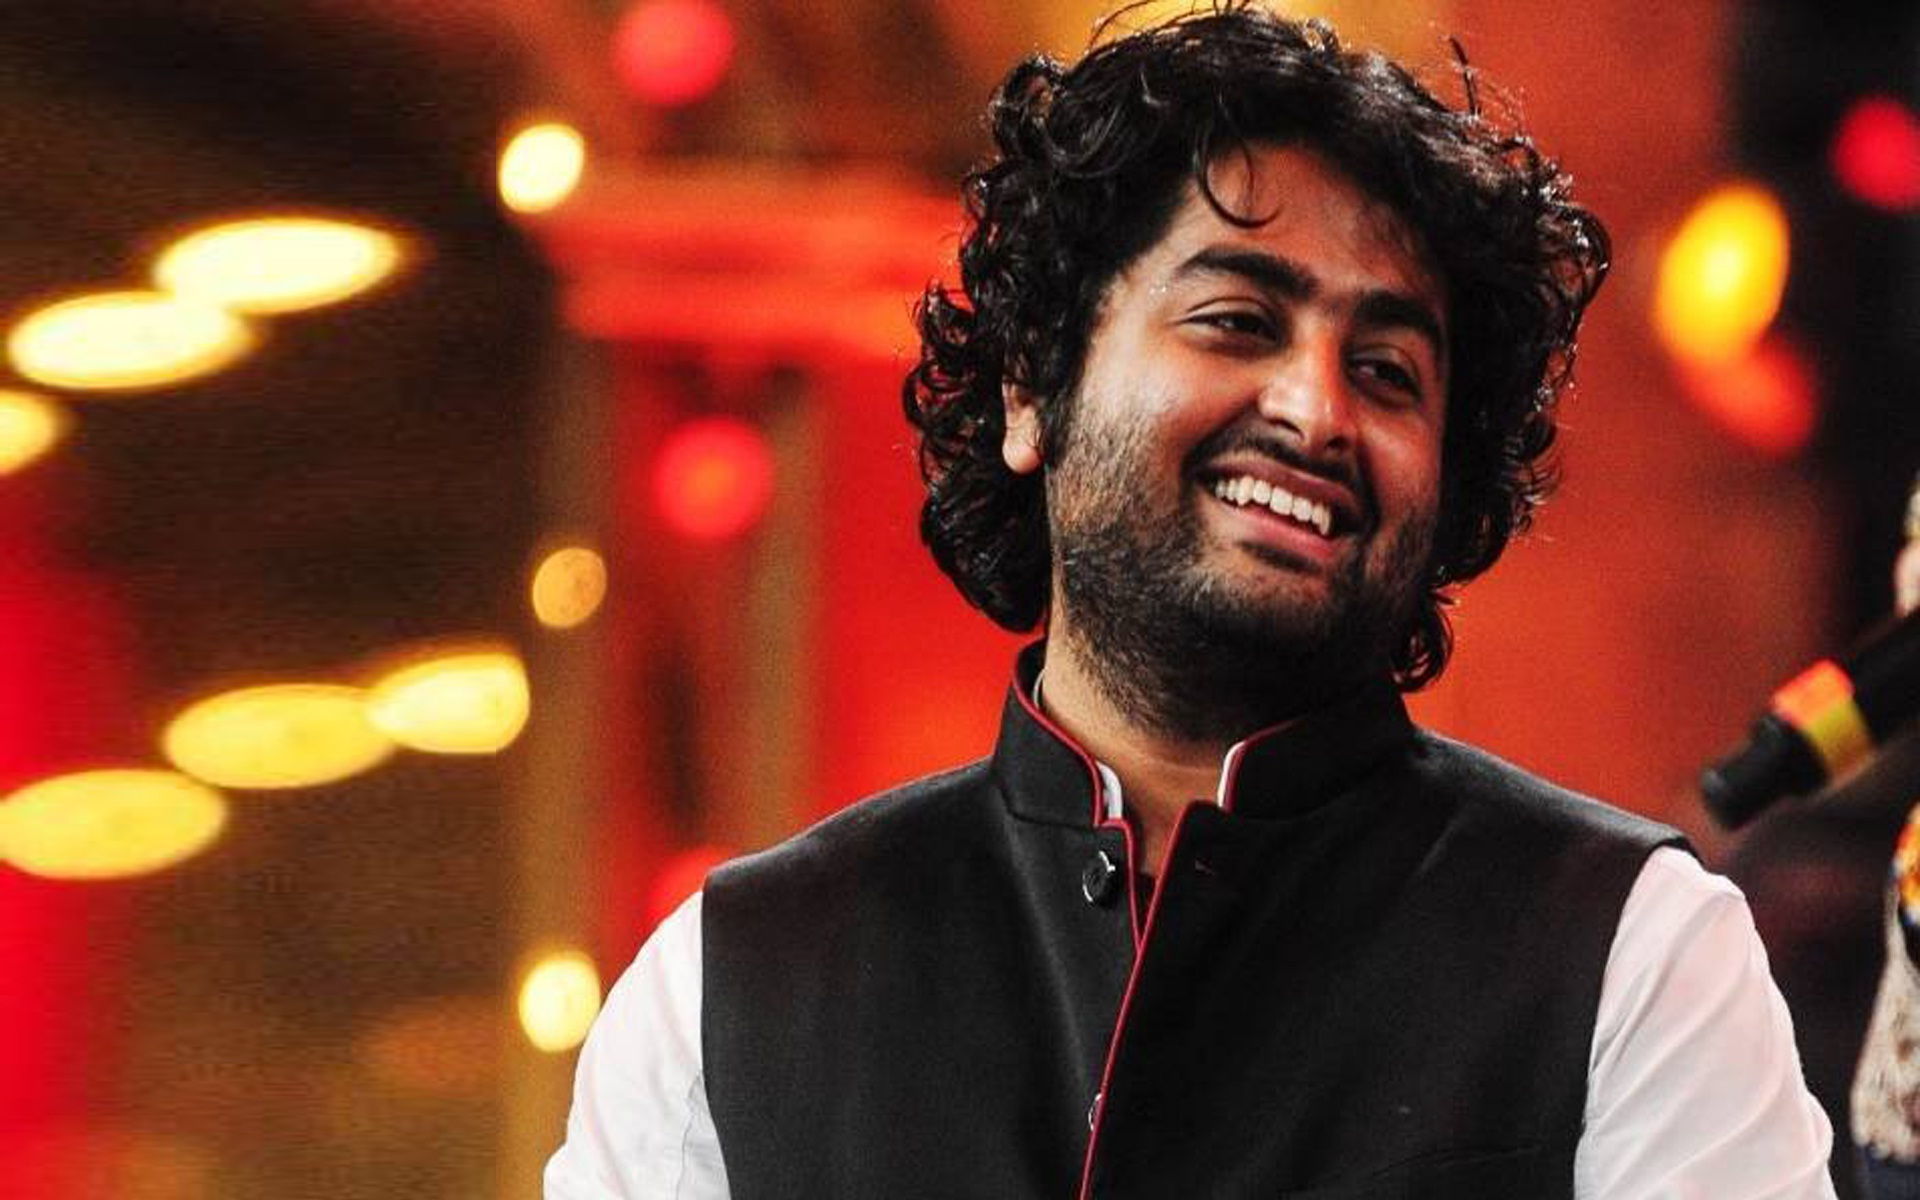 Arijit Singh Photos Images And Wallpapers Mouthshutcom